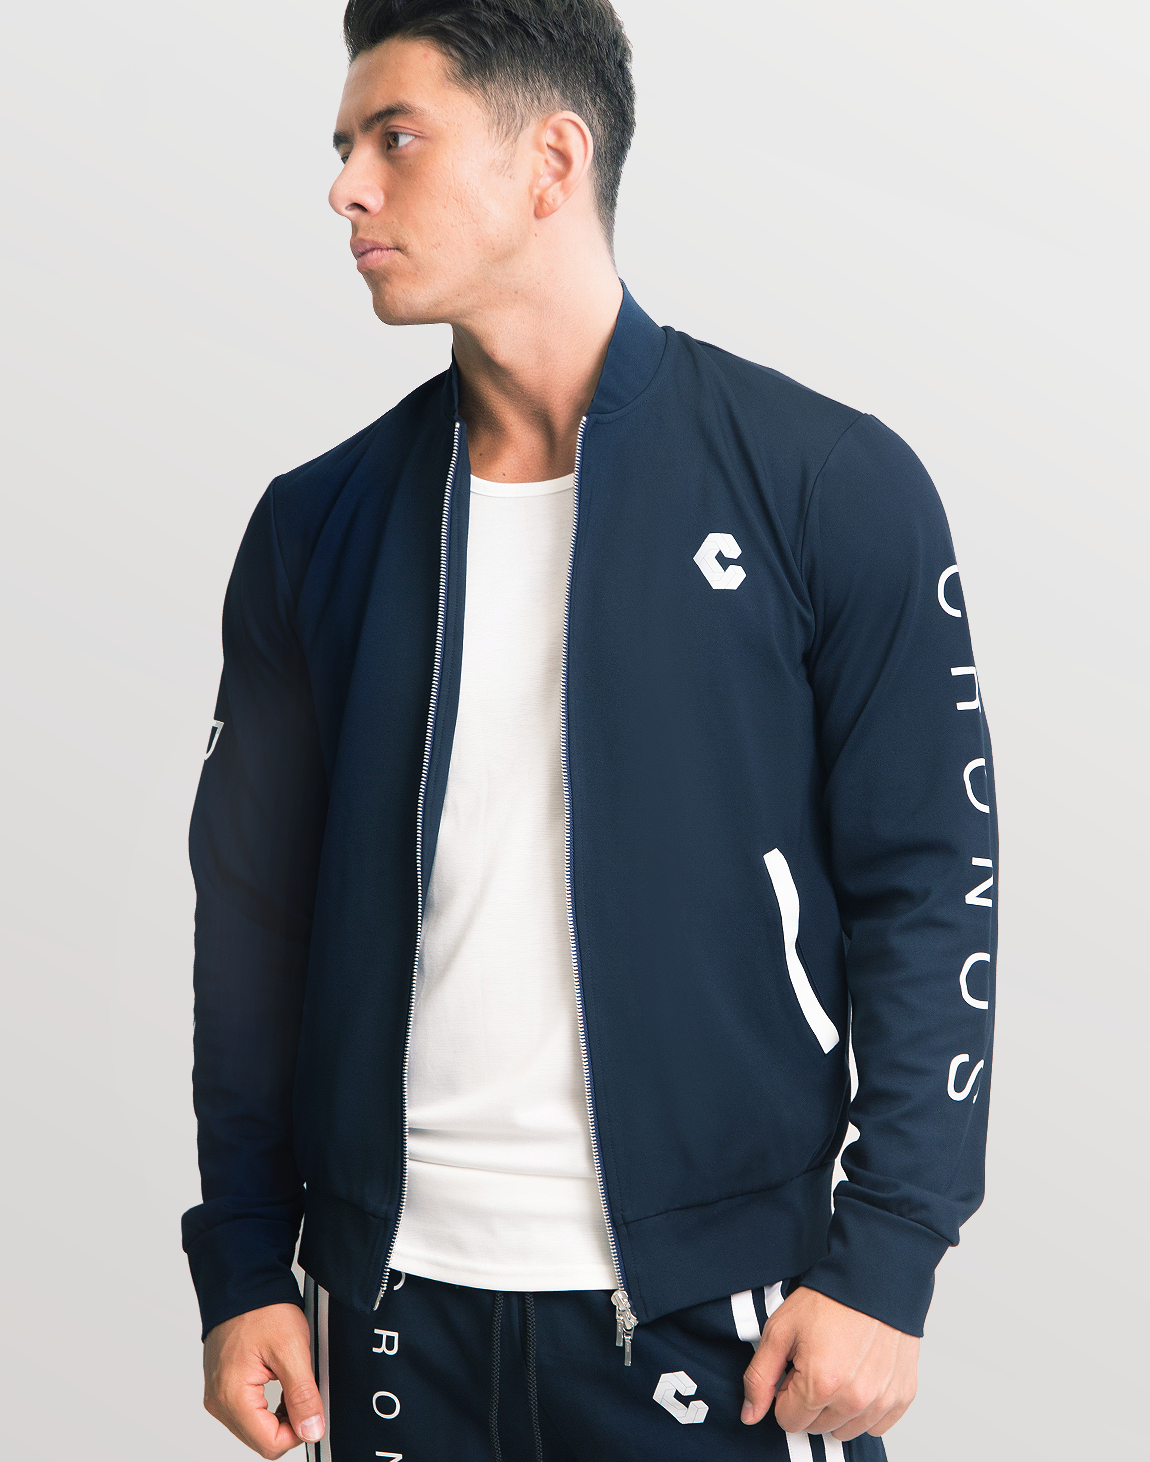 <img class='new_mark_img1' src='https://img.shop-pro.jp/img/new/icons1.gif' style='border:none;display:inline;margin:0px;padding:0px;width:auto;' />Mode Back 2 Stripe Blouson  02 Navy